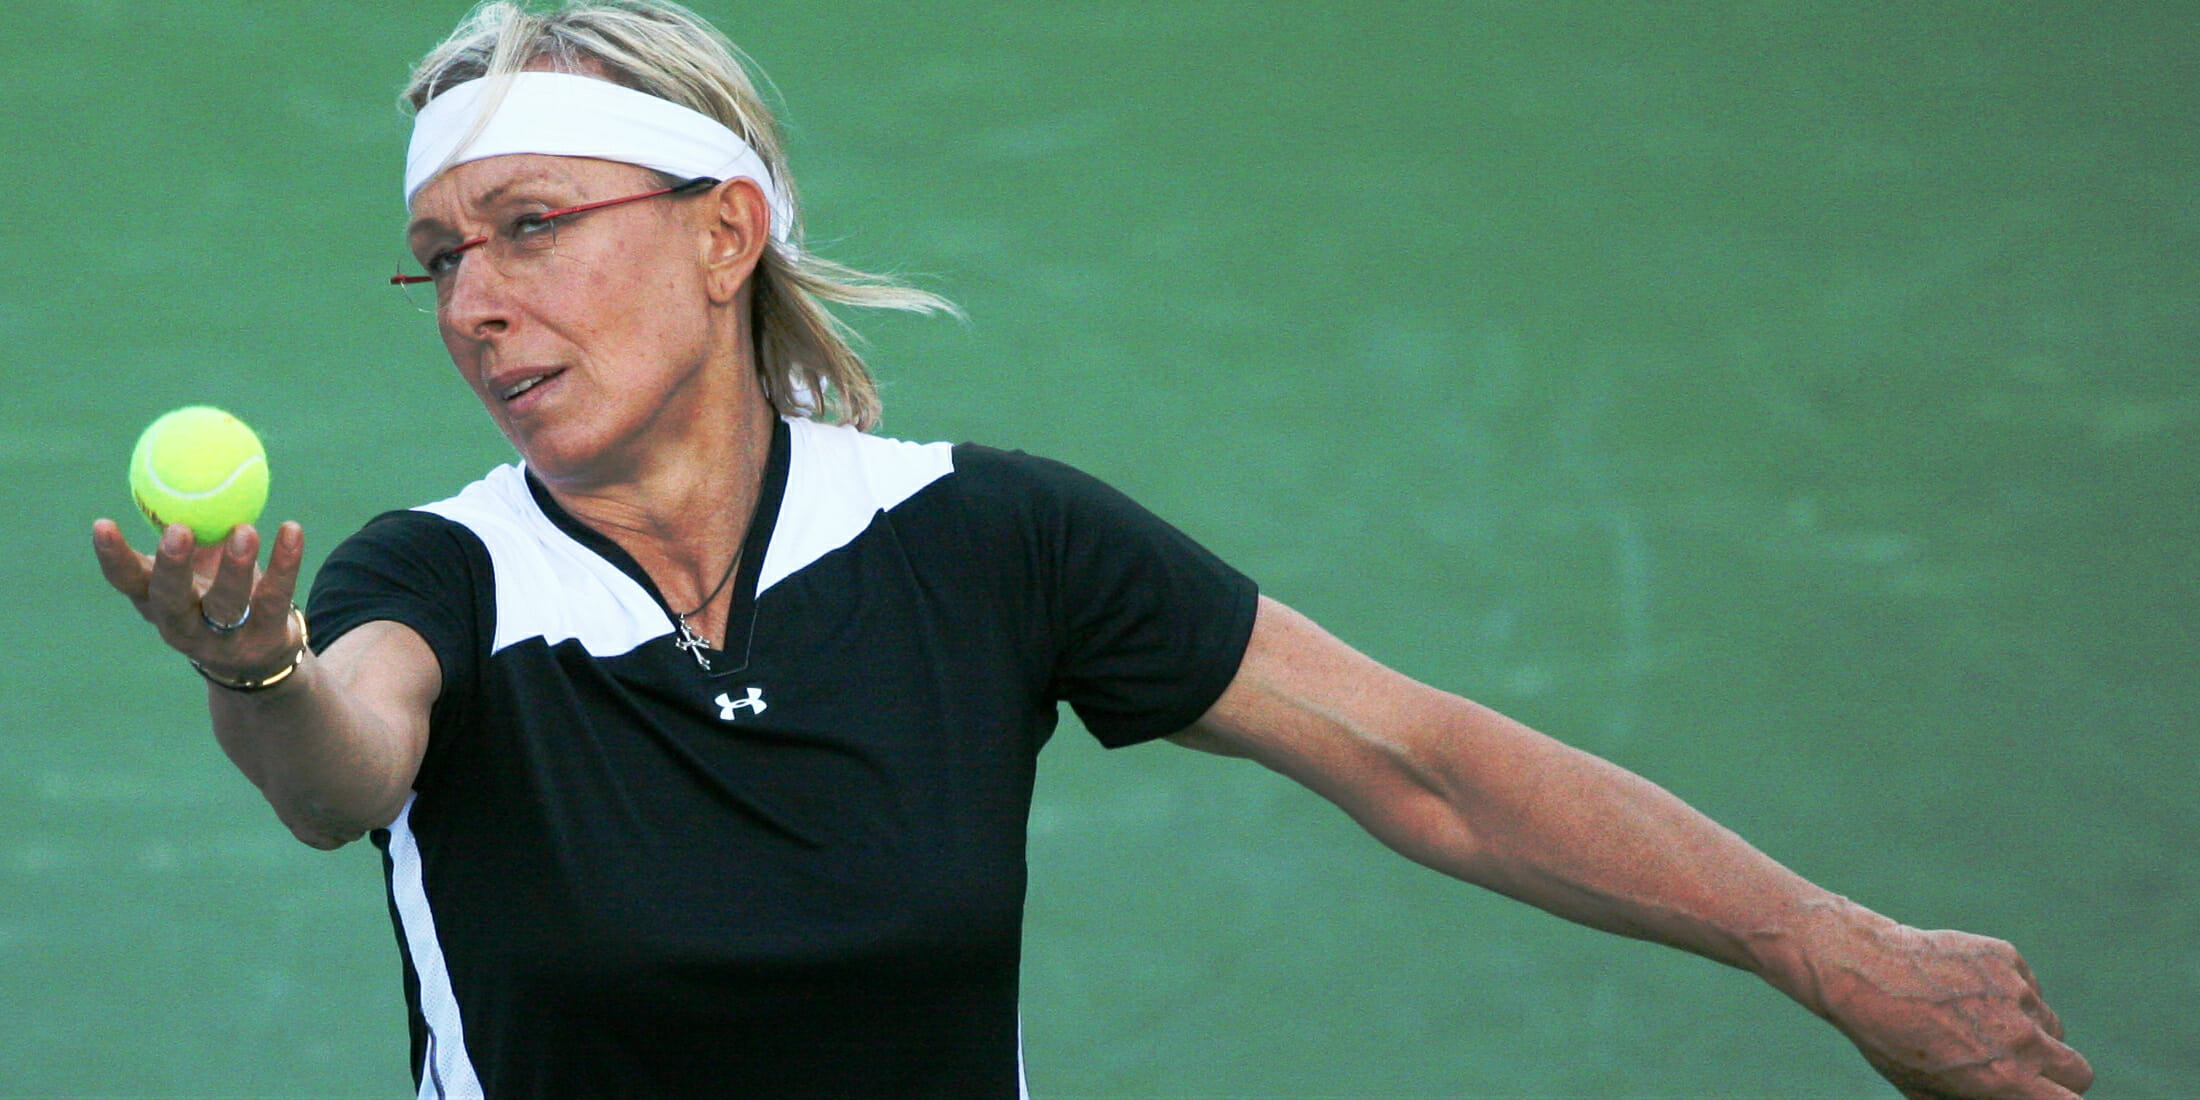 Martina Navratilova alleges an enormous pay gap between herself and commentator John McEnroe.